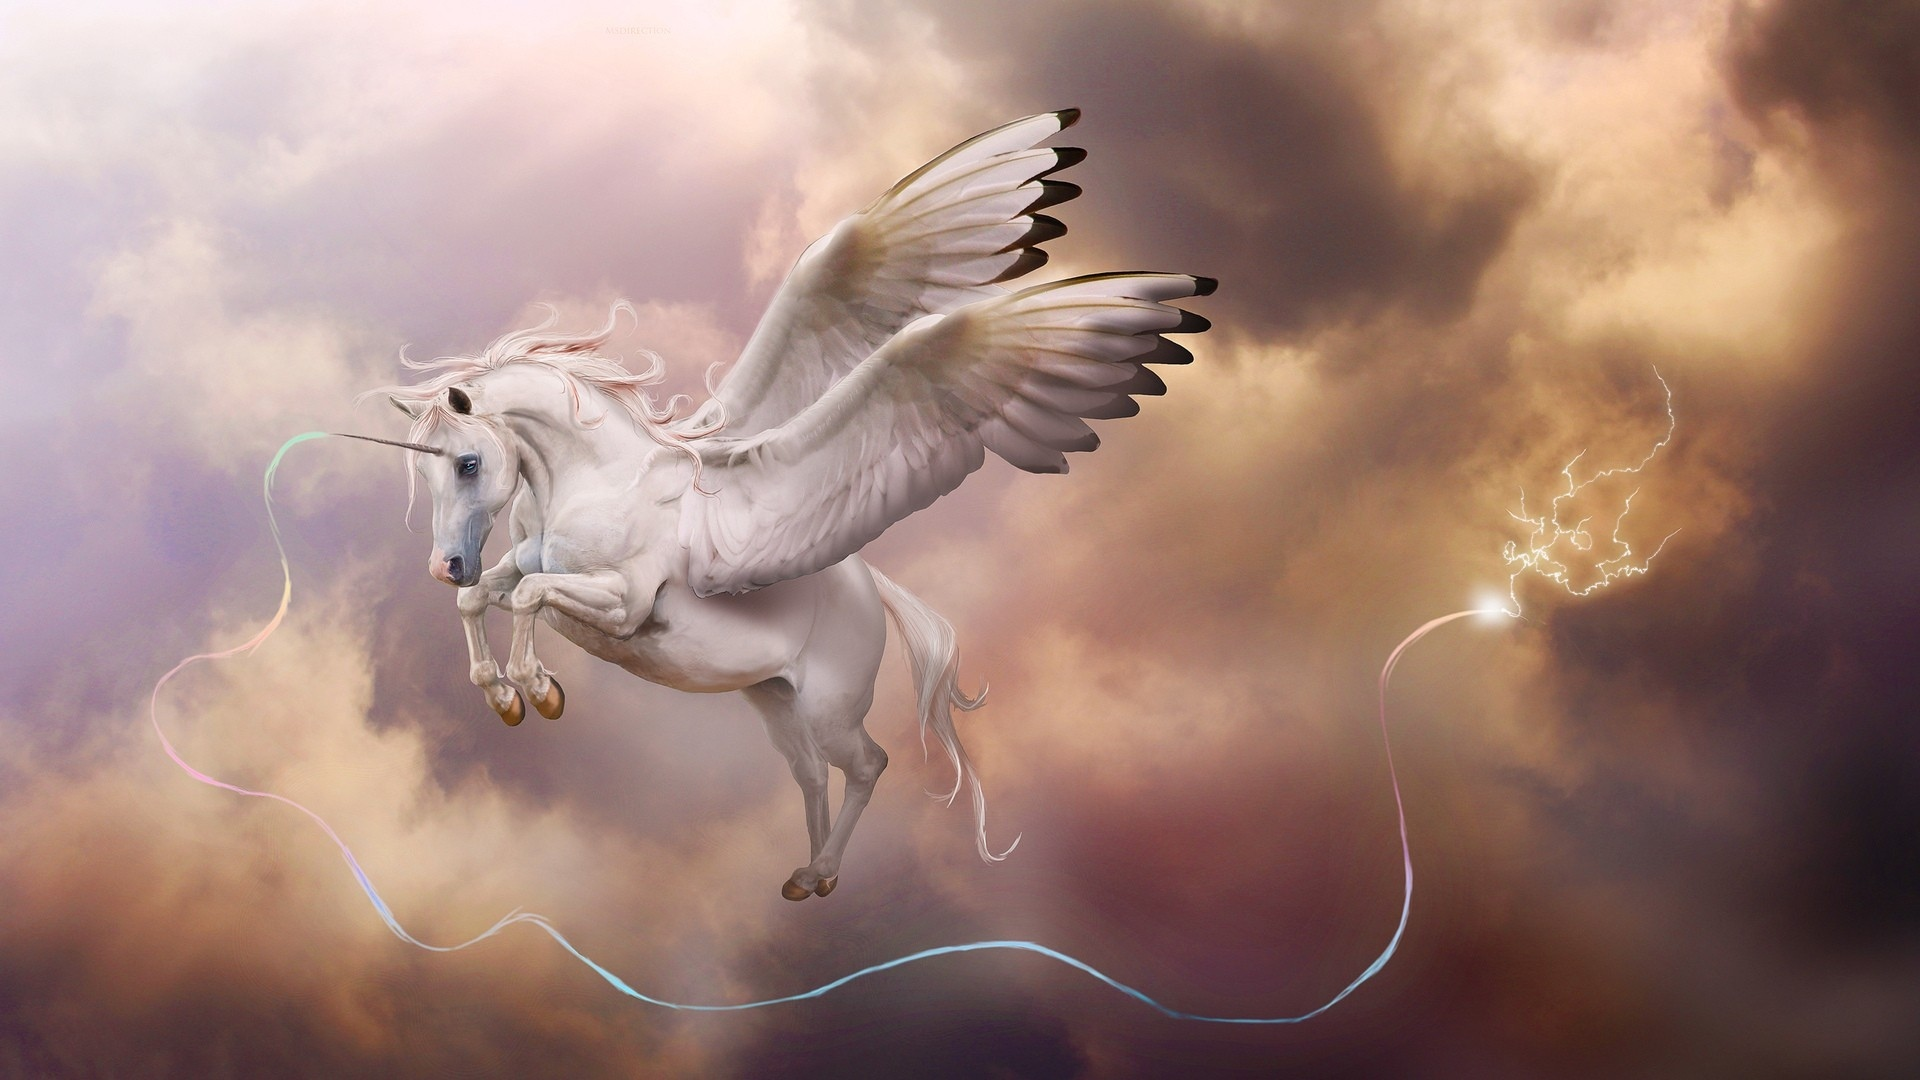 Unicorn Backgrounds   Wallpaper High Definition High Quality 1920x1080